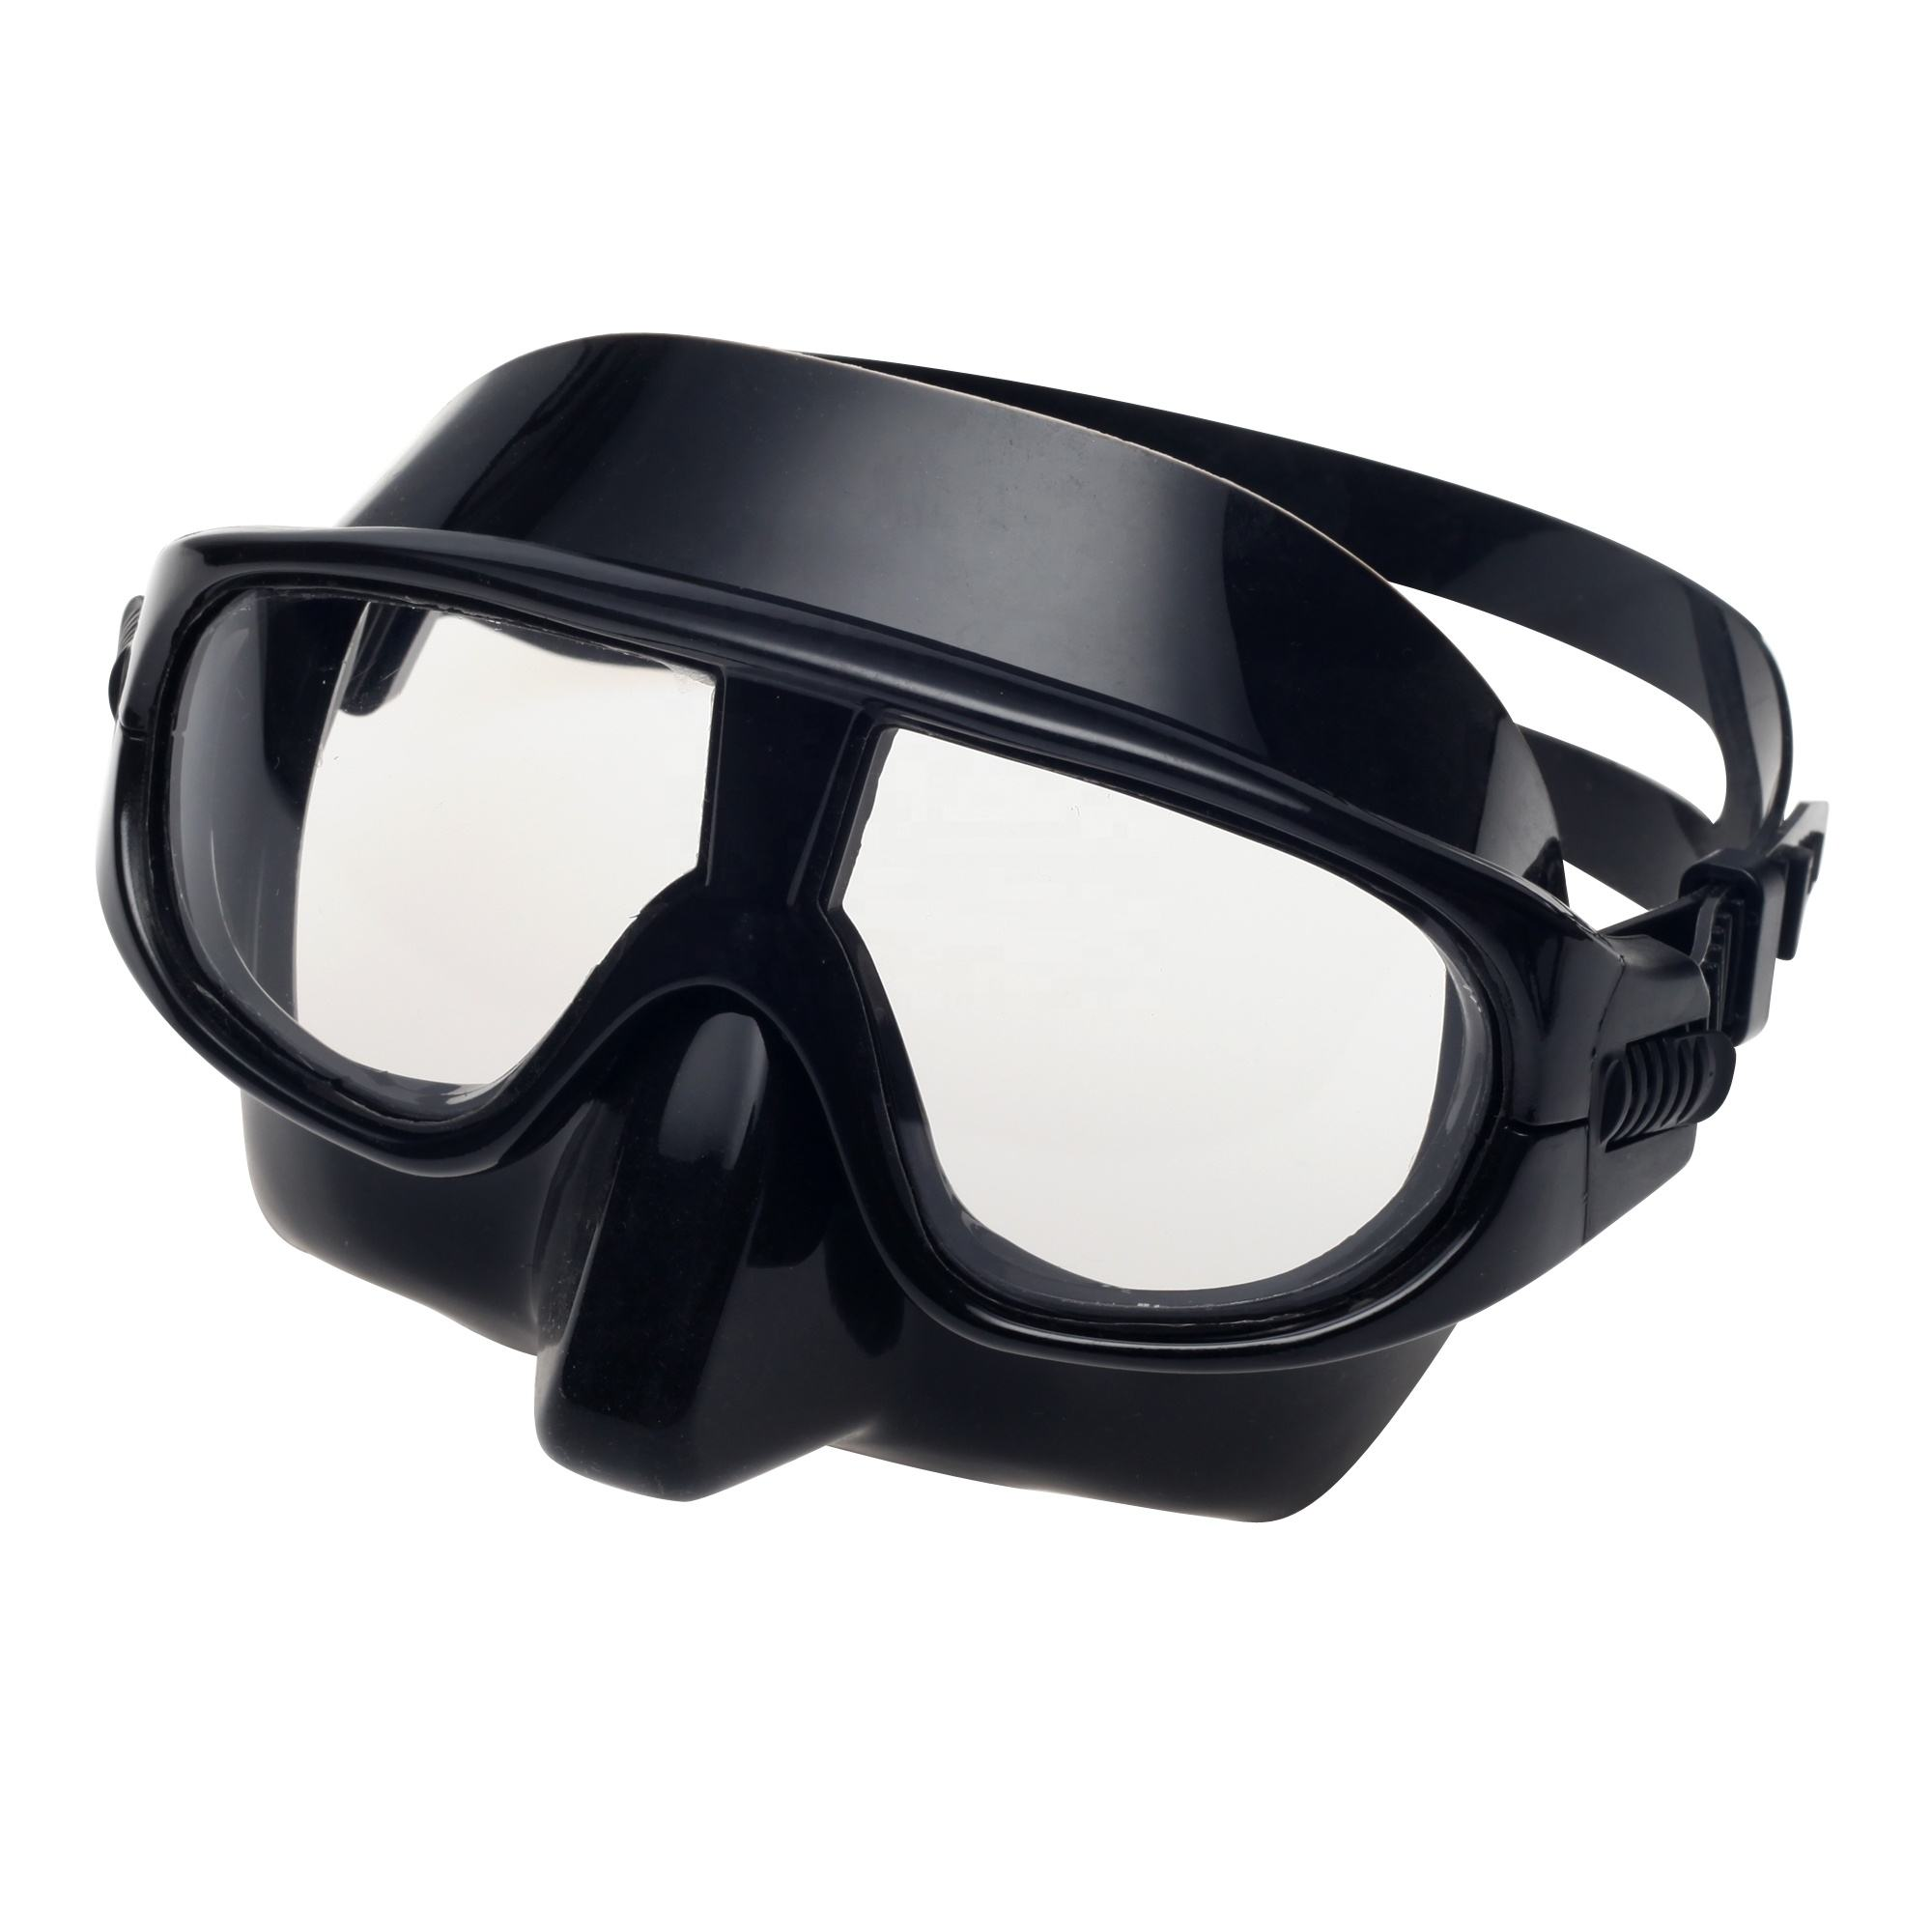 Top quality low volume silicone spearfishing diving snorkeling goggles anti-fog free dive Freediving mask